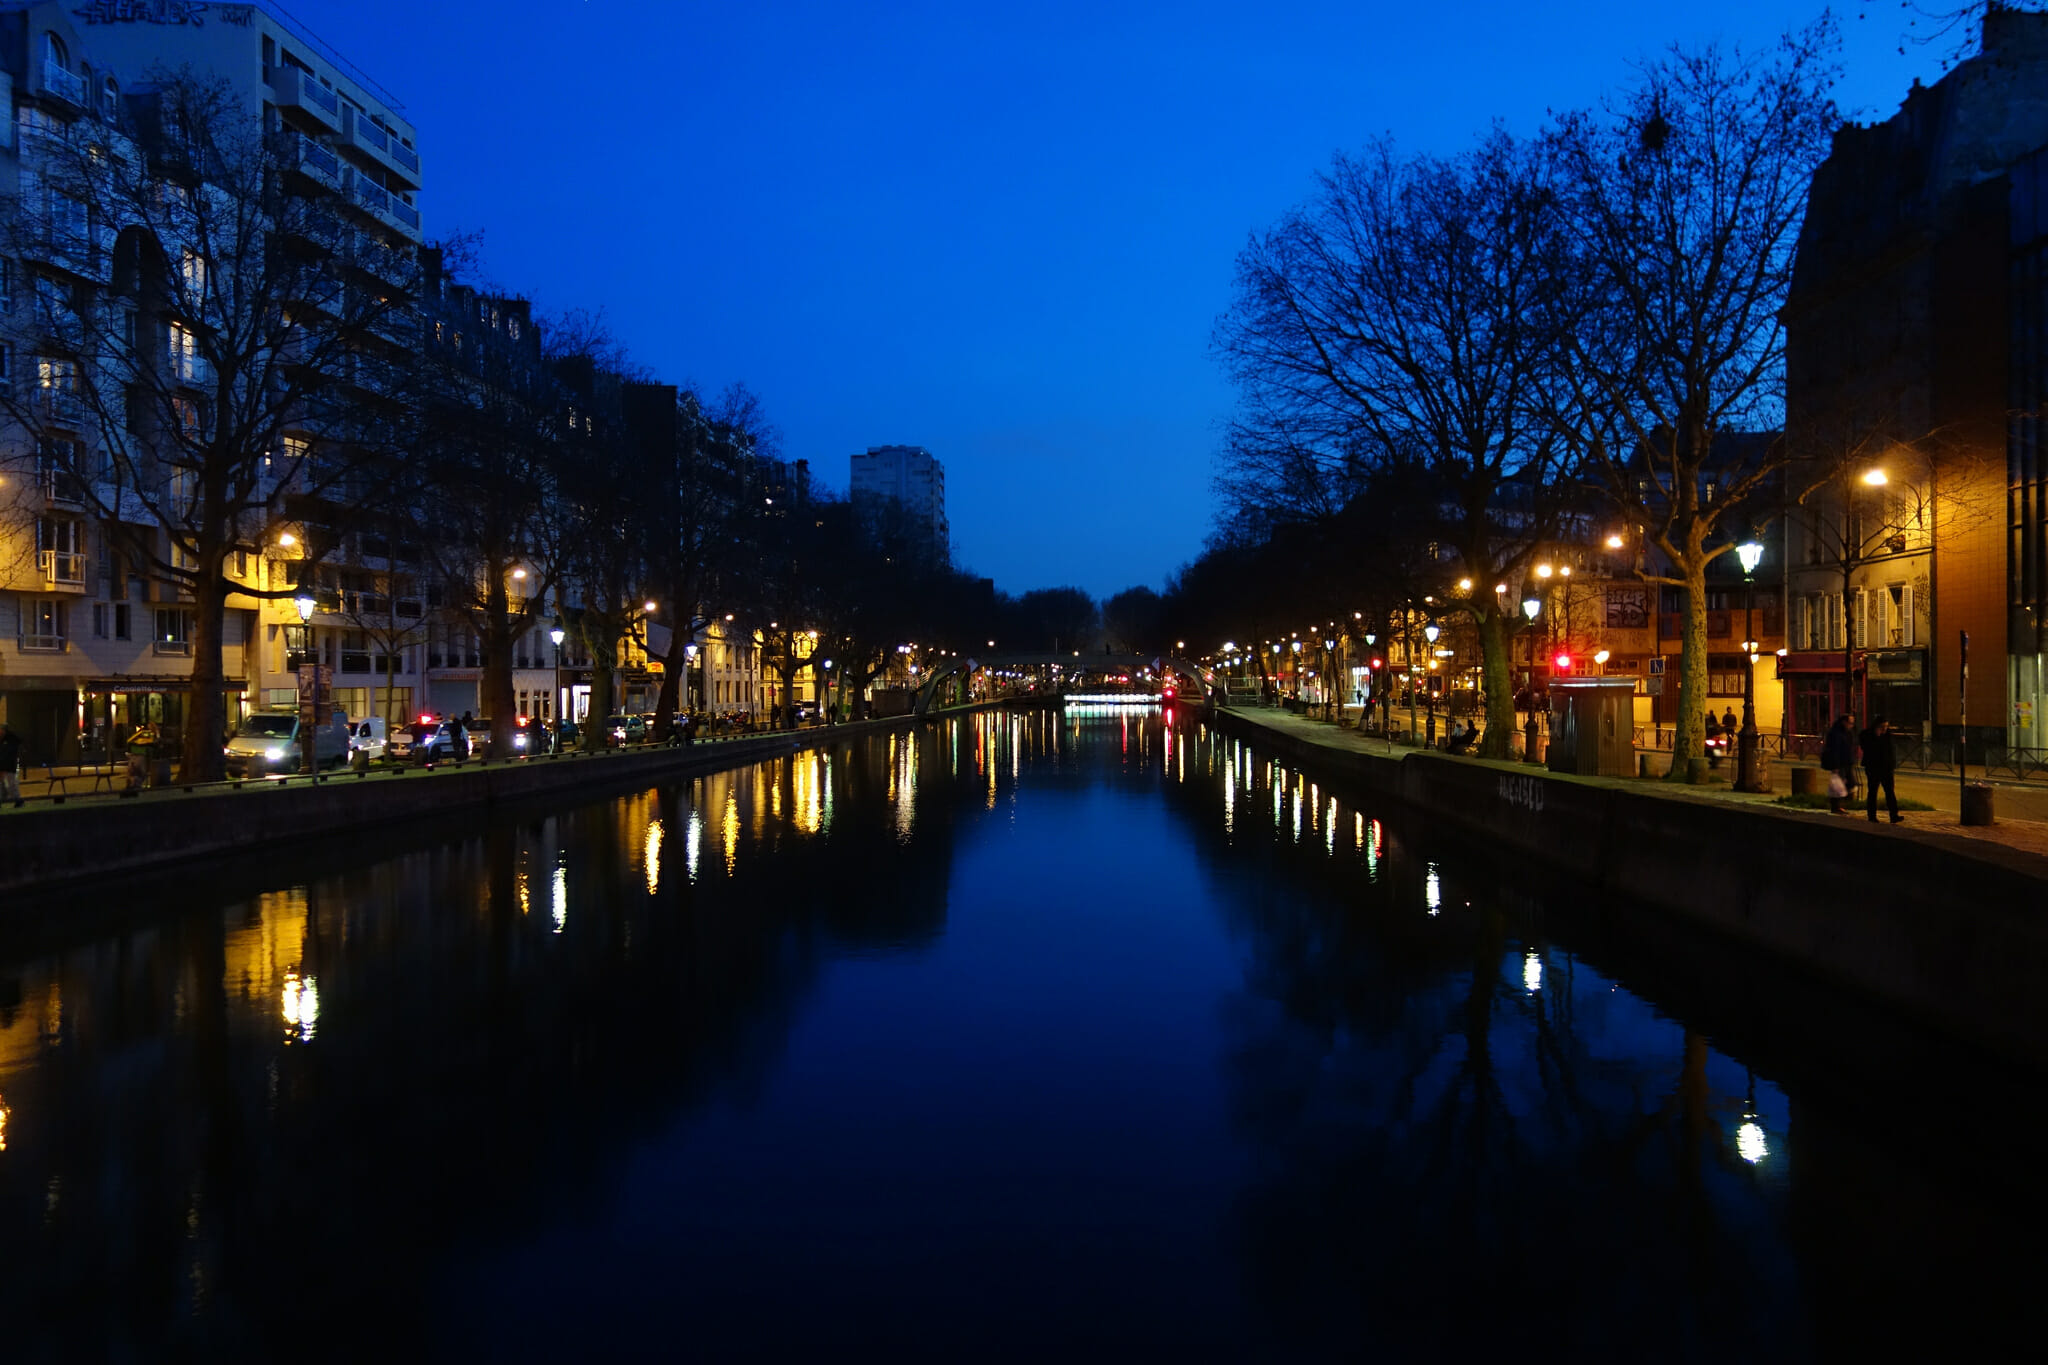 view of Canal Saint-Martin at night